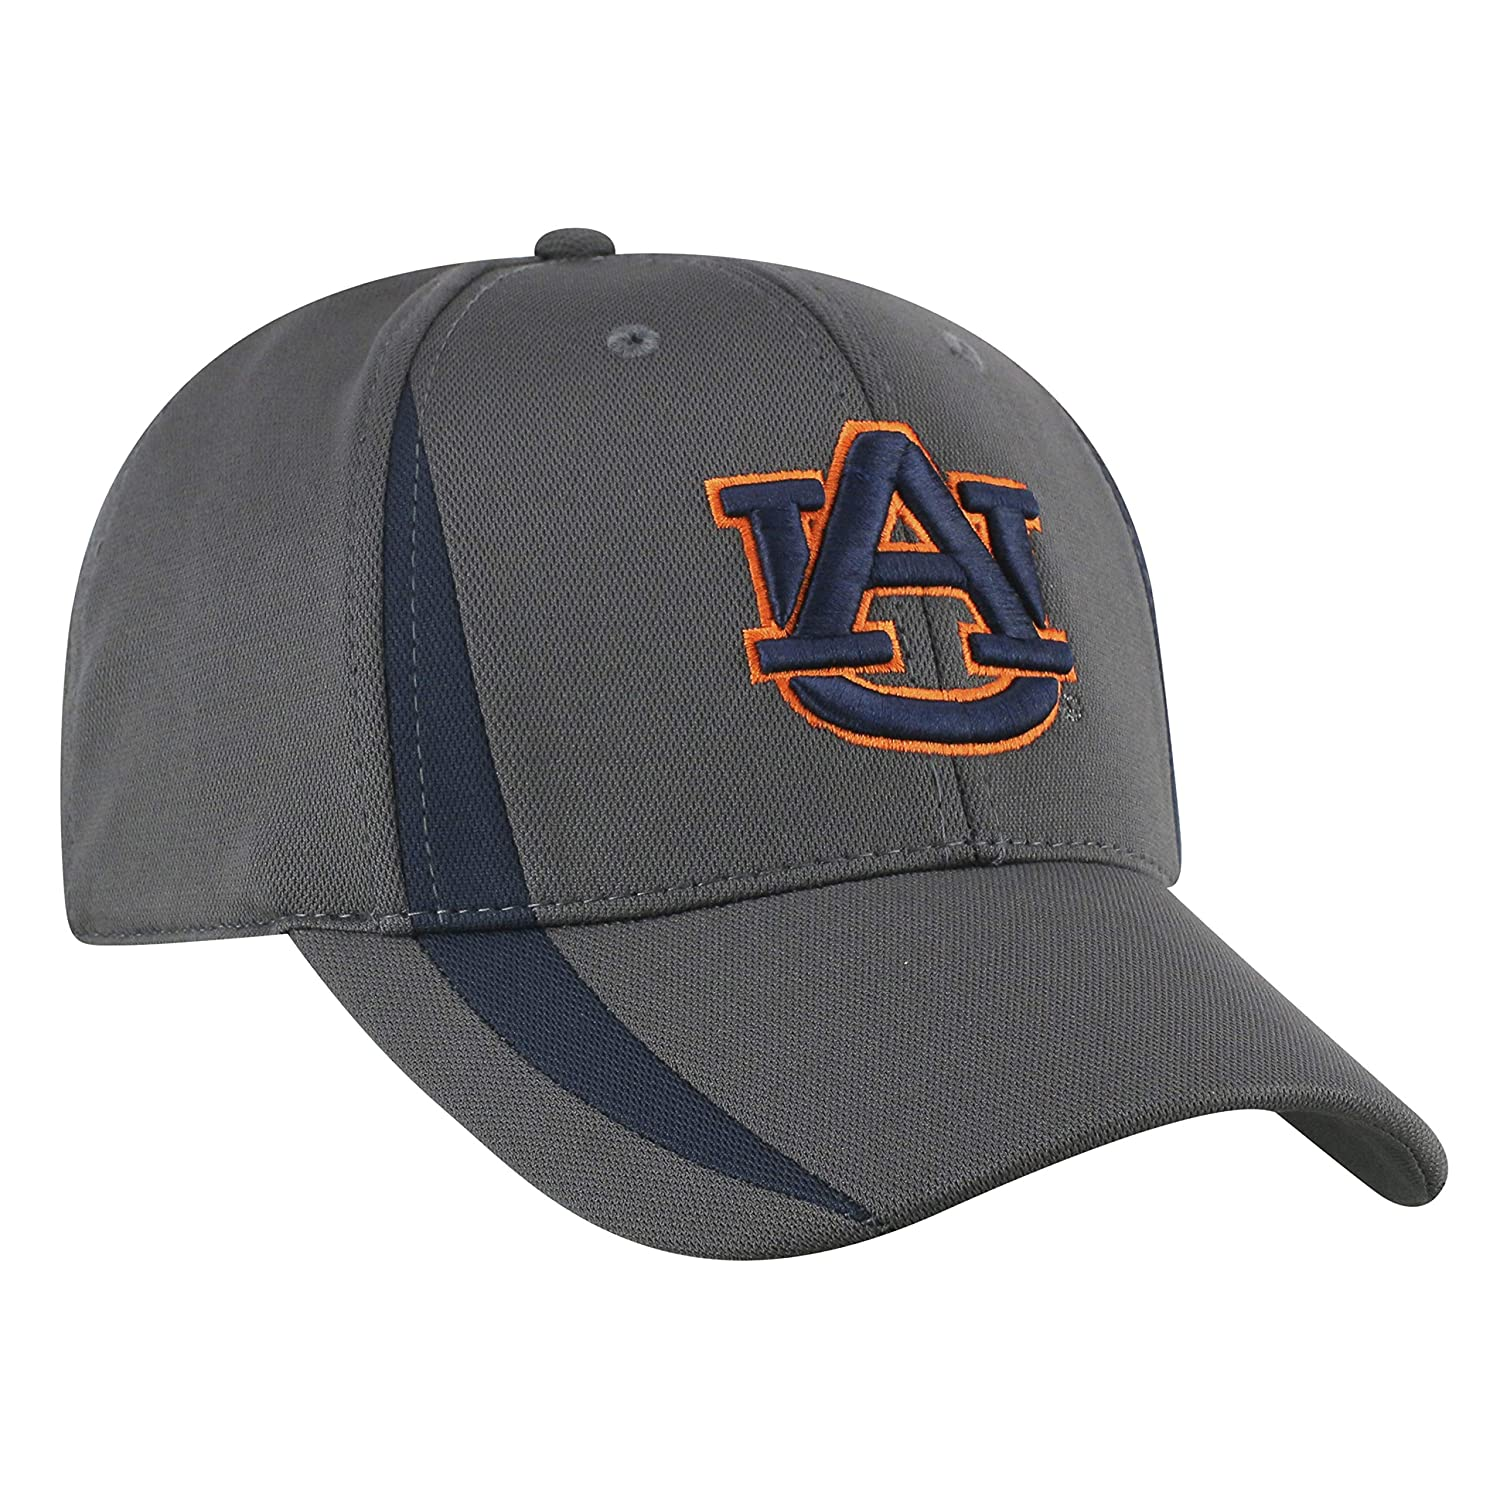 Top of the World NCAA Mens Performance Fitted Charcoal Icon hat